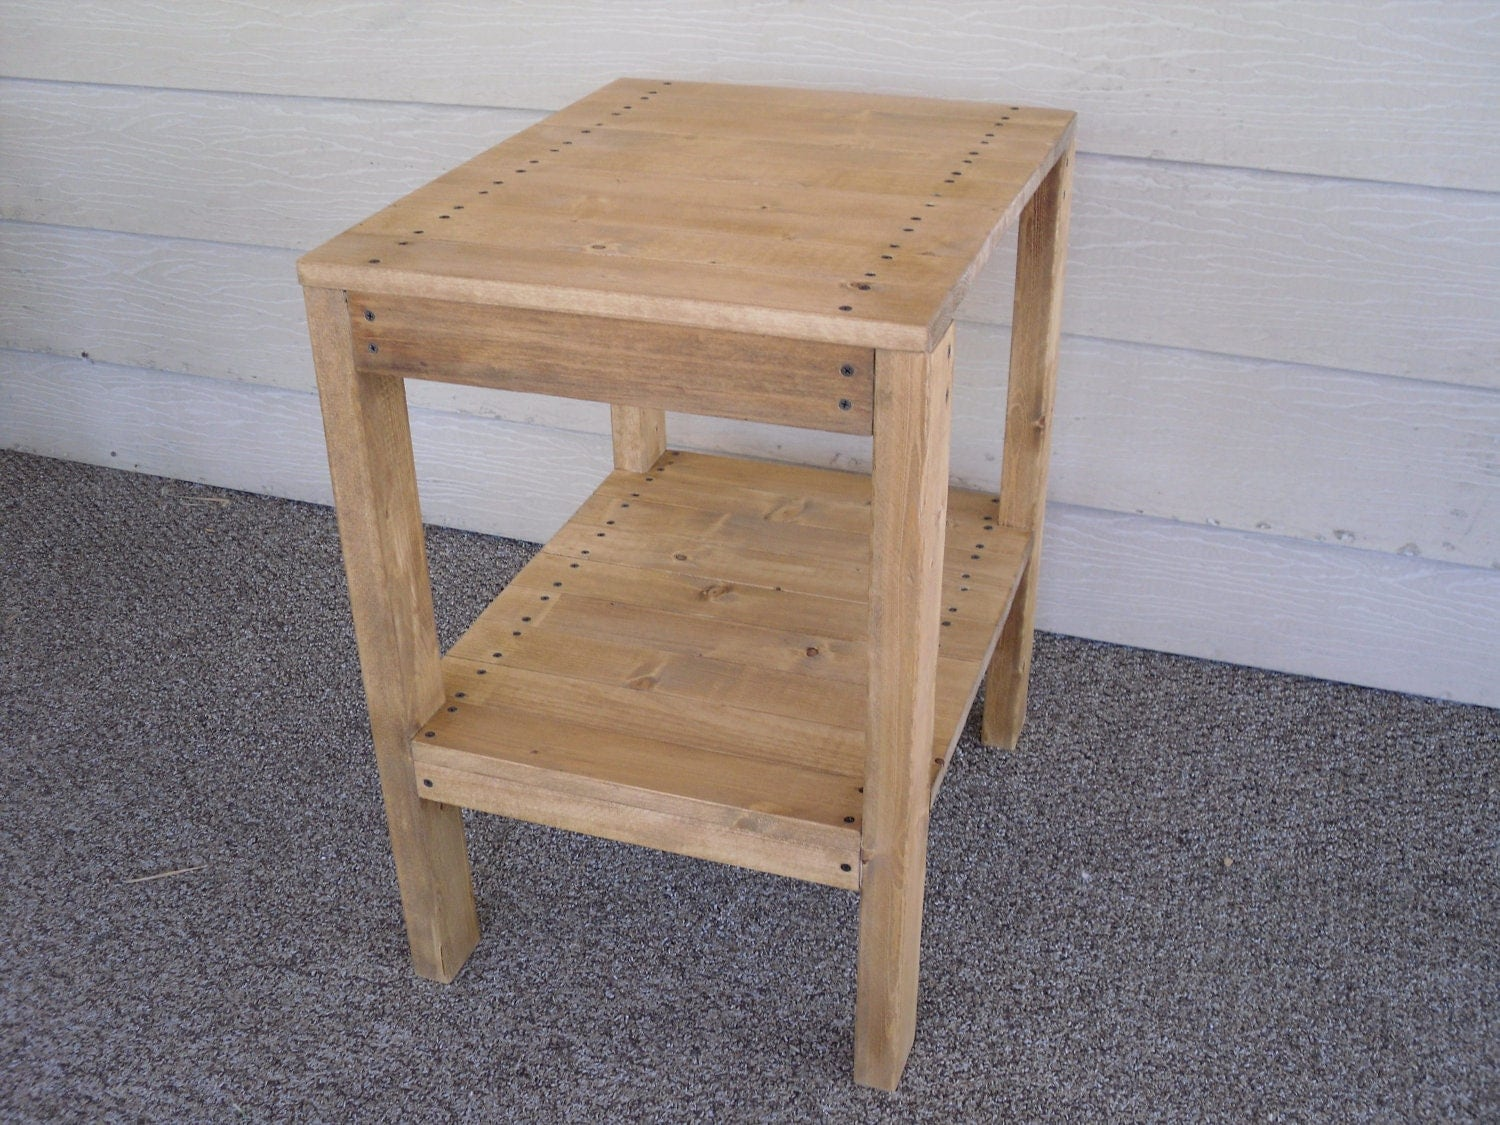 DIY PLANS to make End Table Indoor/Outdoor by wingstoshop